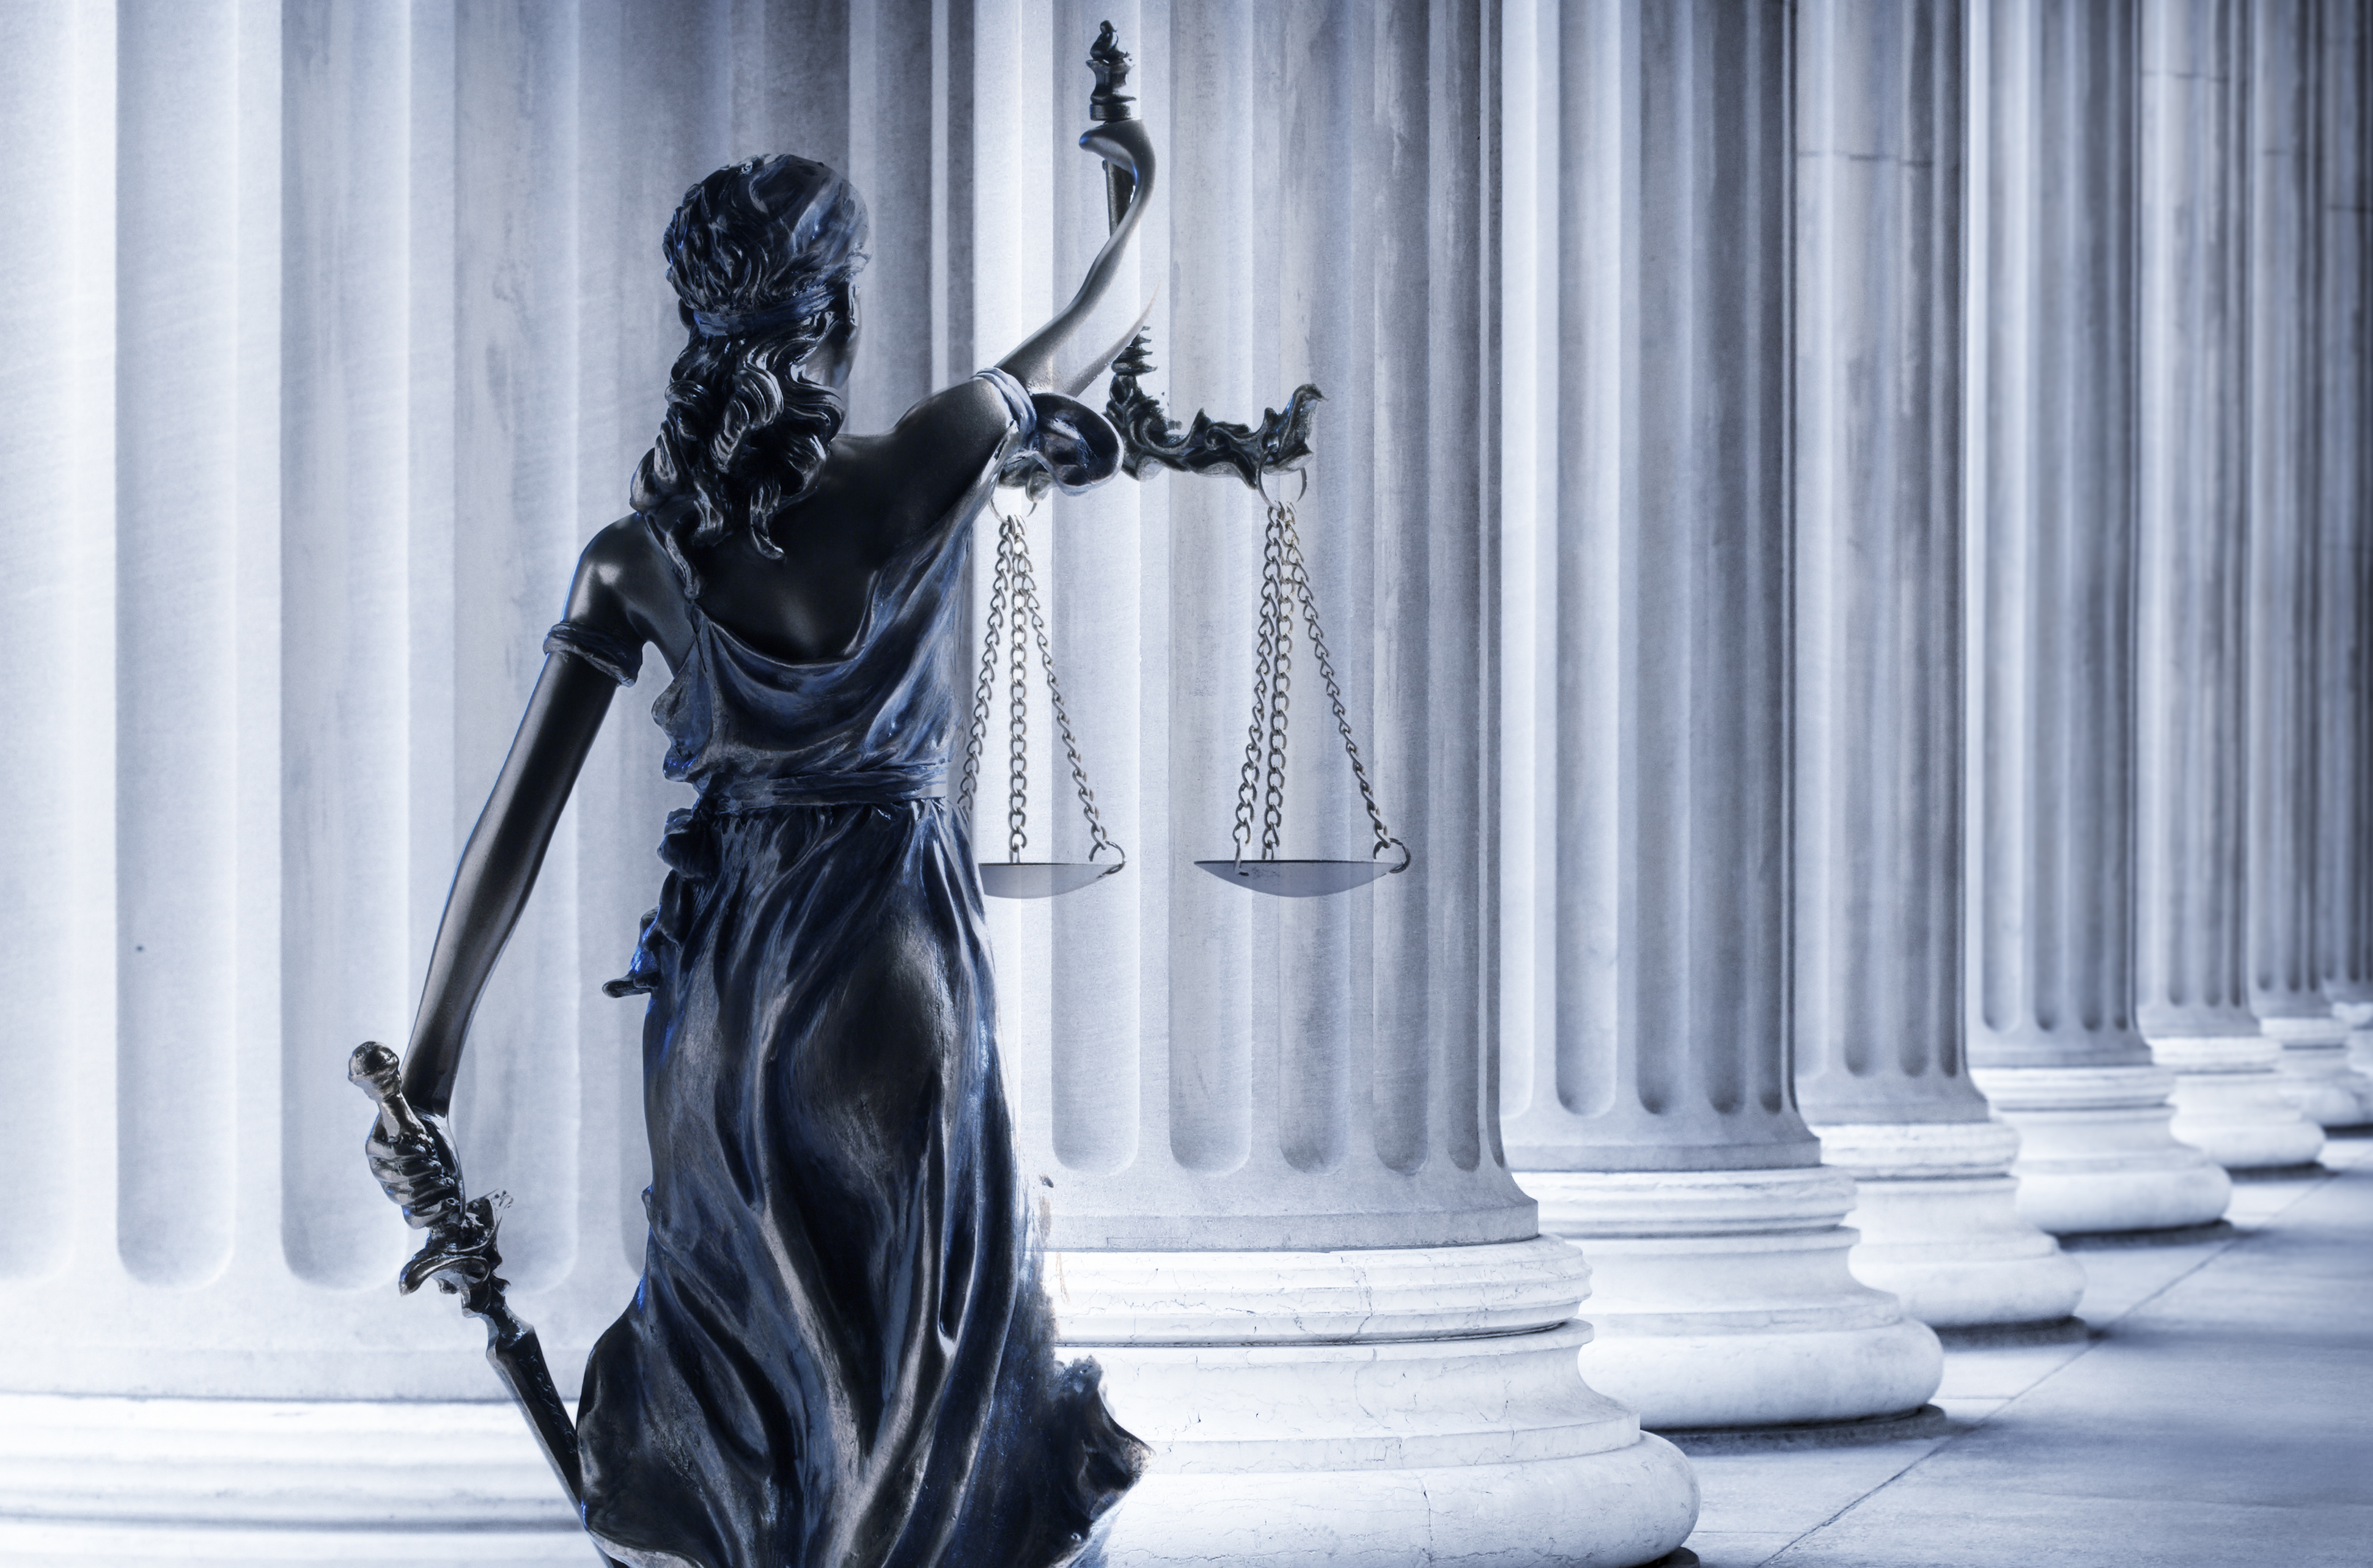 Lawsuits in the United States